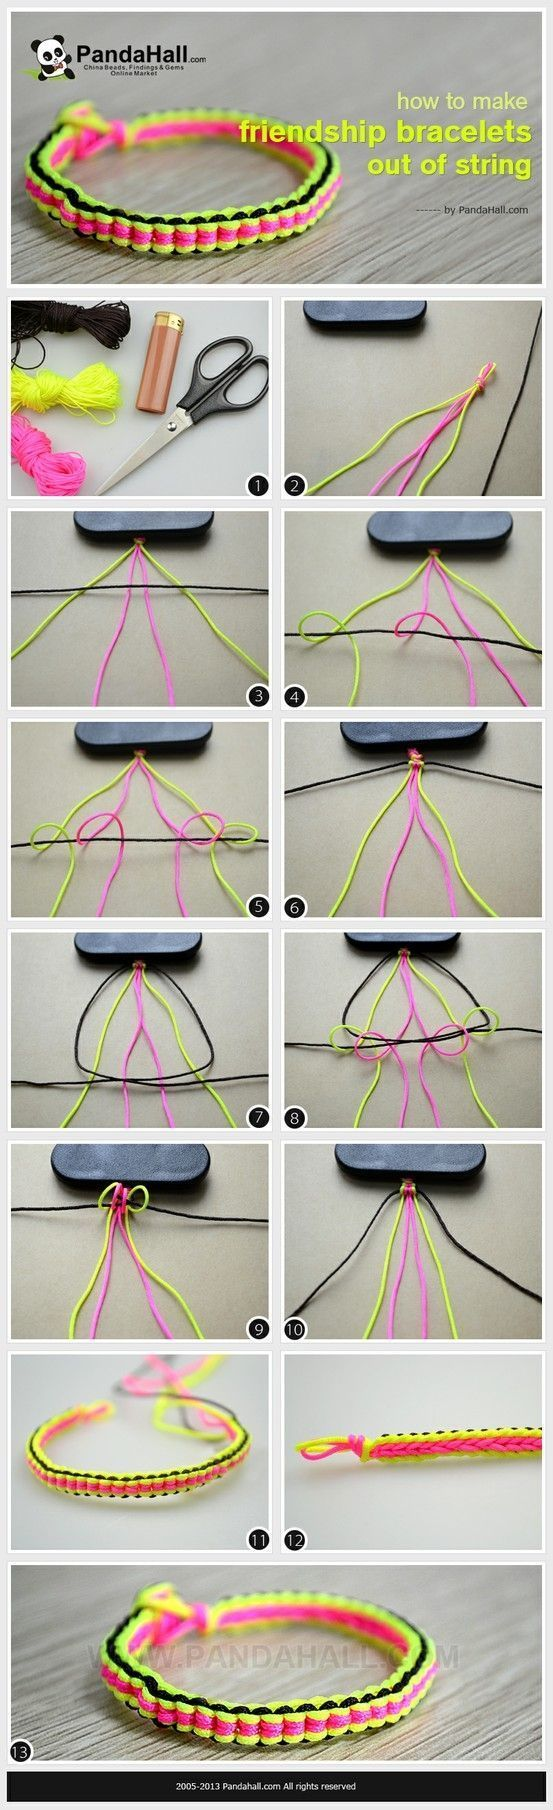 how to make cool bracelets out of string